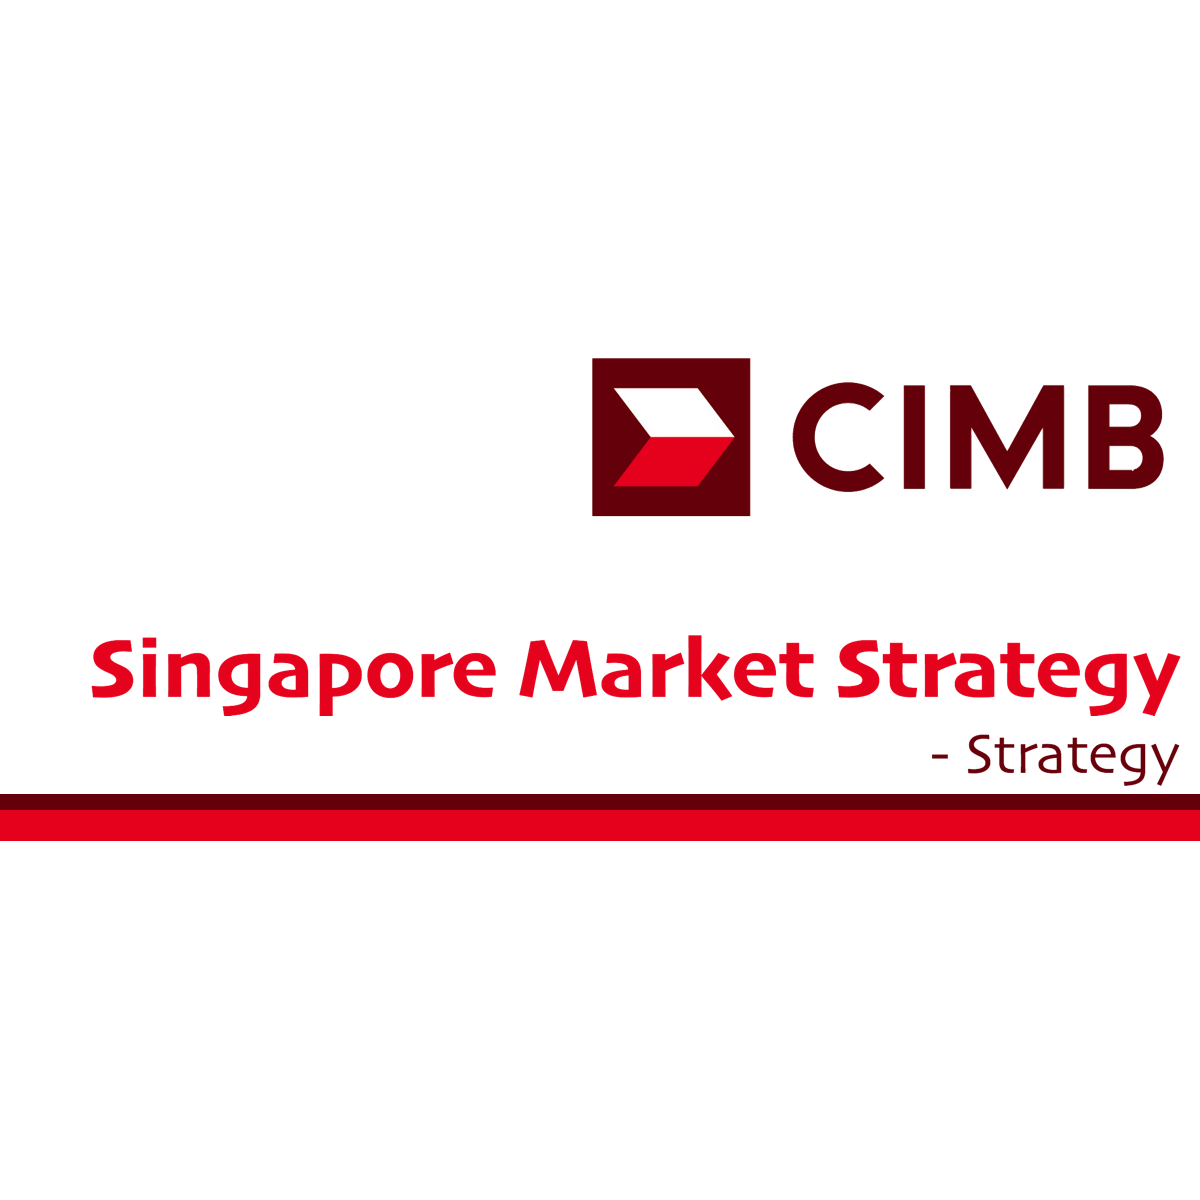 Singapore Strategy - CIMB Research 2017-02-20: Cleaner global digitalised city